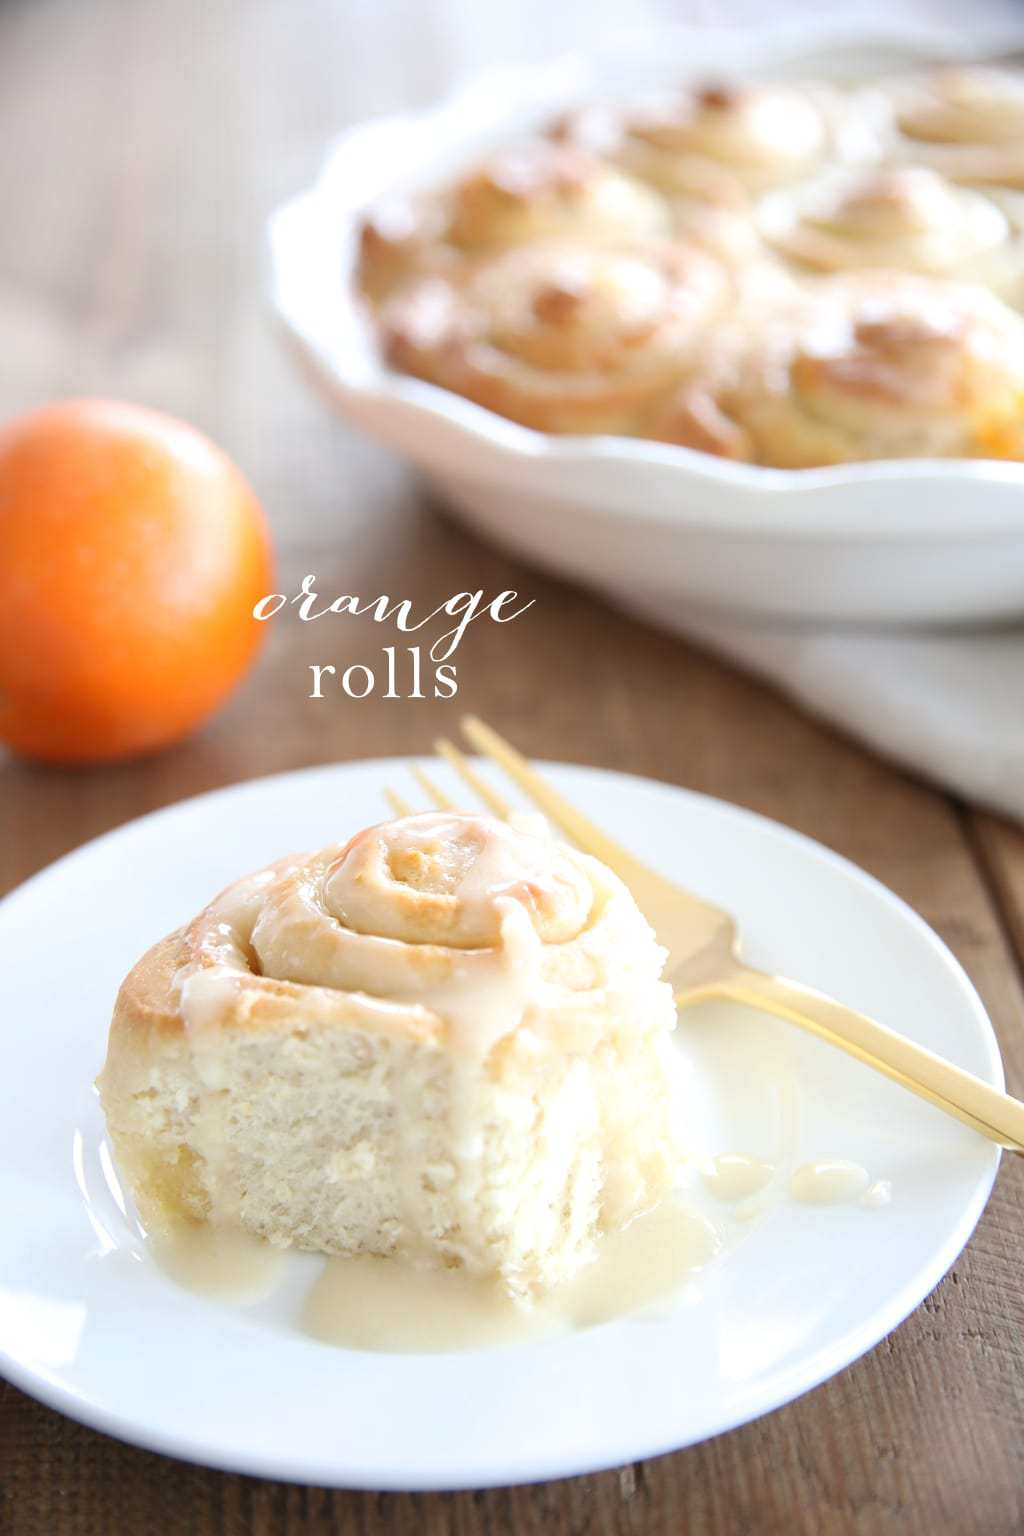 An orange roll served on a white pate with a text overlay 'orange rolls'